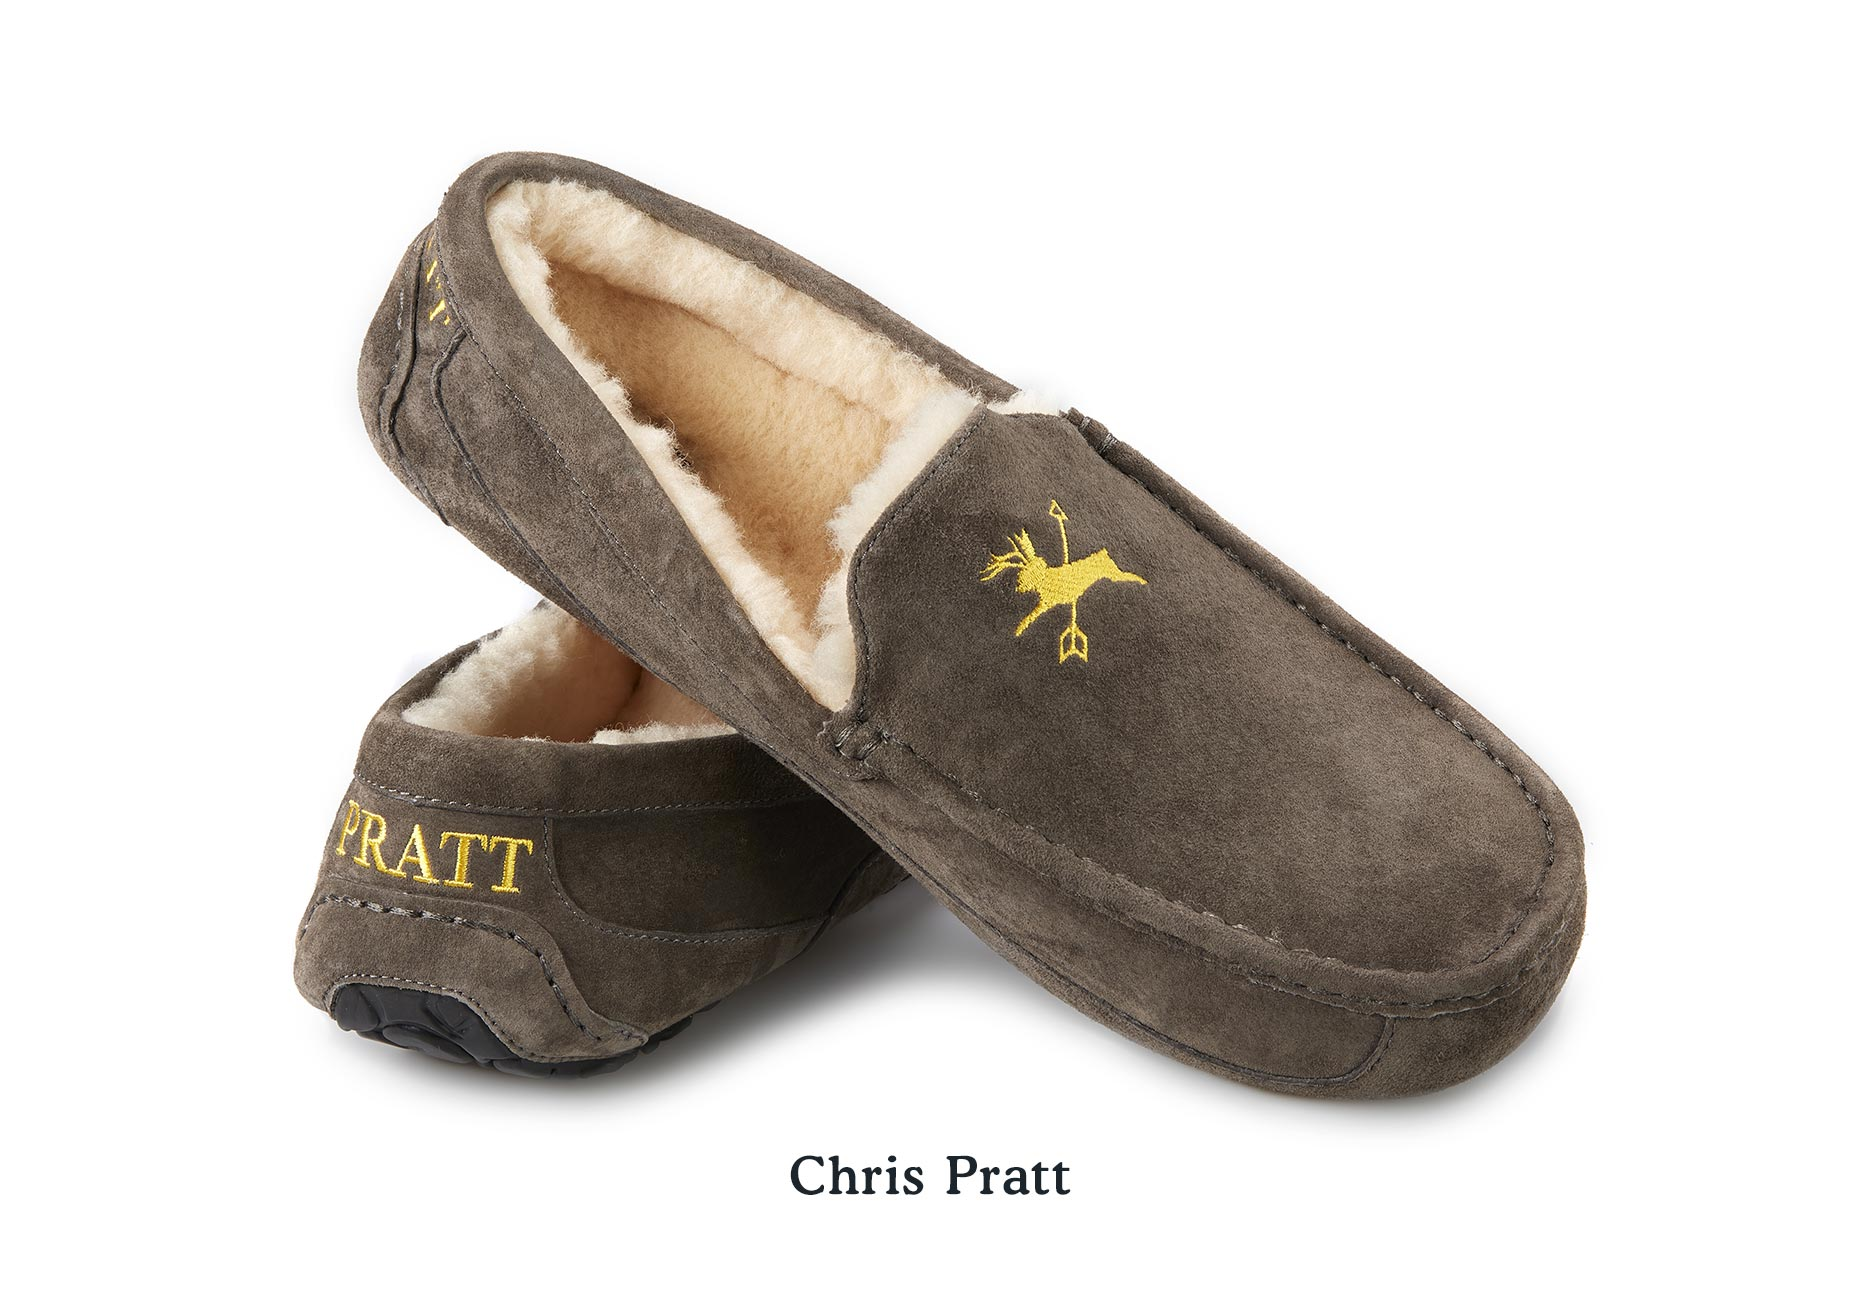 "A pair of UGG Slippers for Chris Pratt with embroidery of a deer crossed with an arrow and the name ""Pratt"" on the heel"